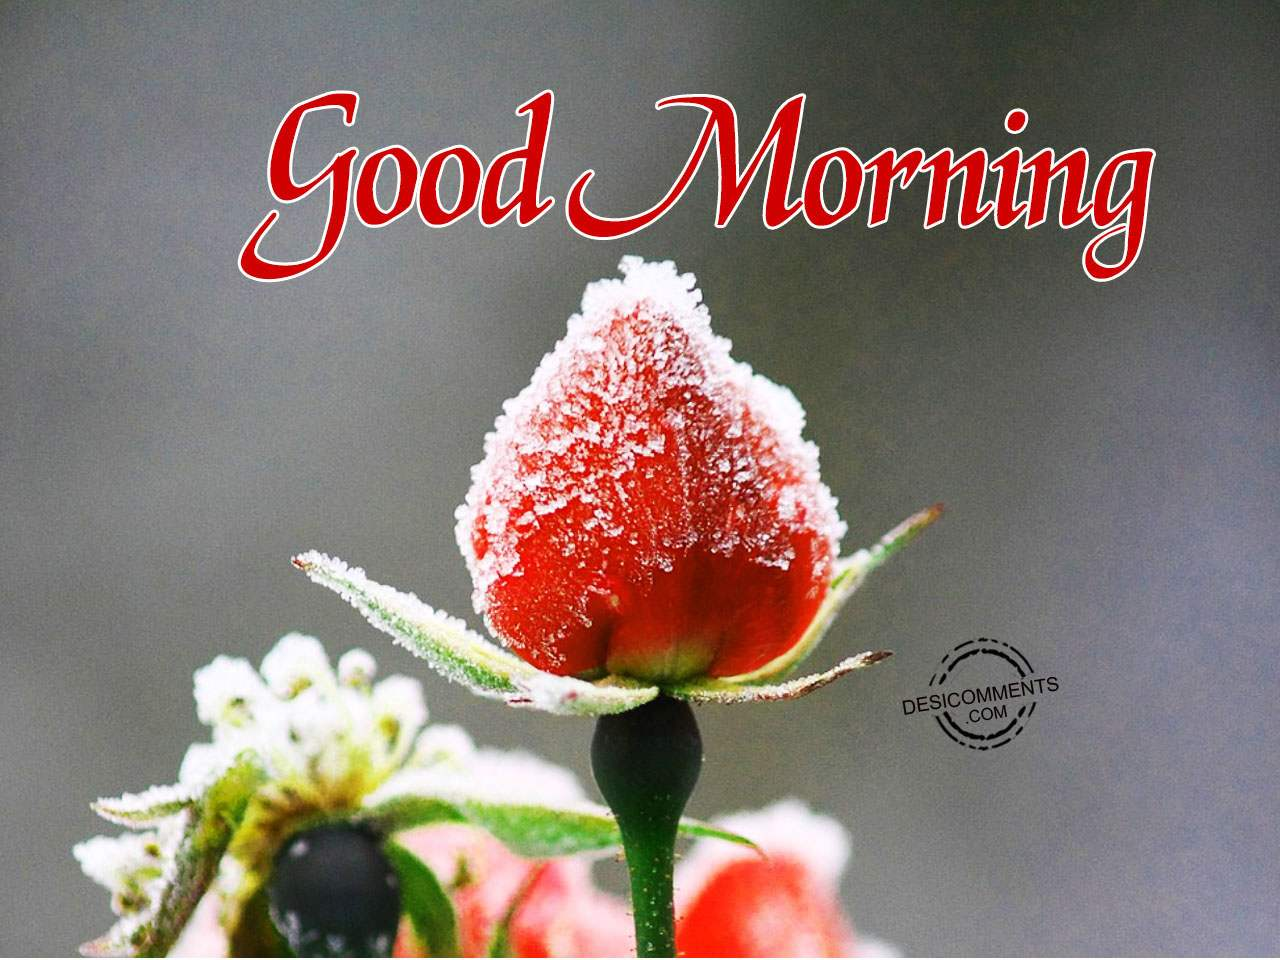 Image Of Good Morning Have A Great Day Desicomments